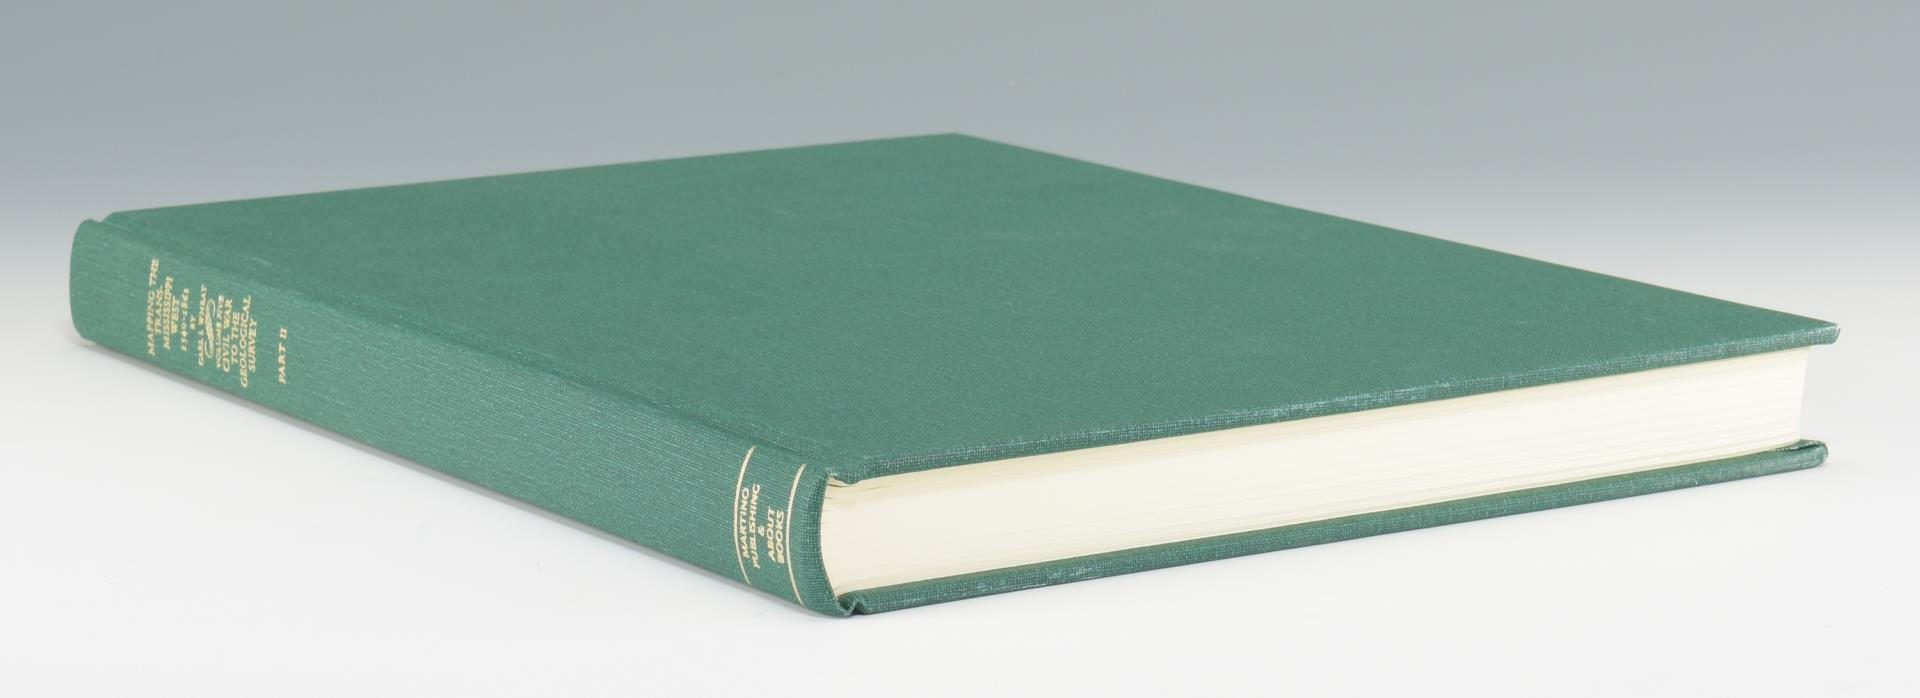 Lot 172: Mapping the Trans-Mississippi West, 6 Vols. facsimile reprint edition